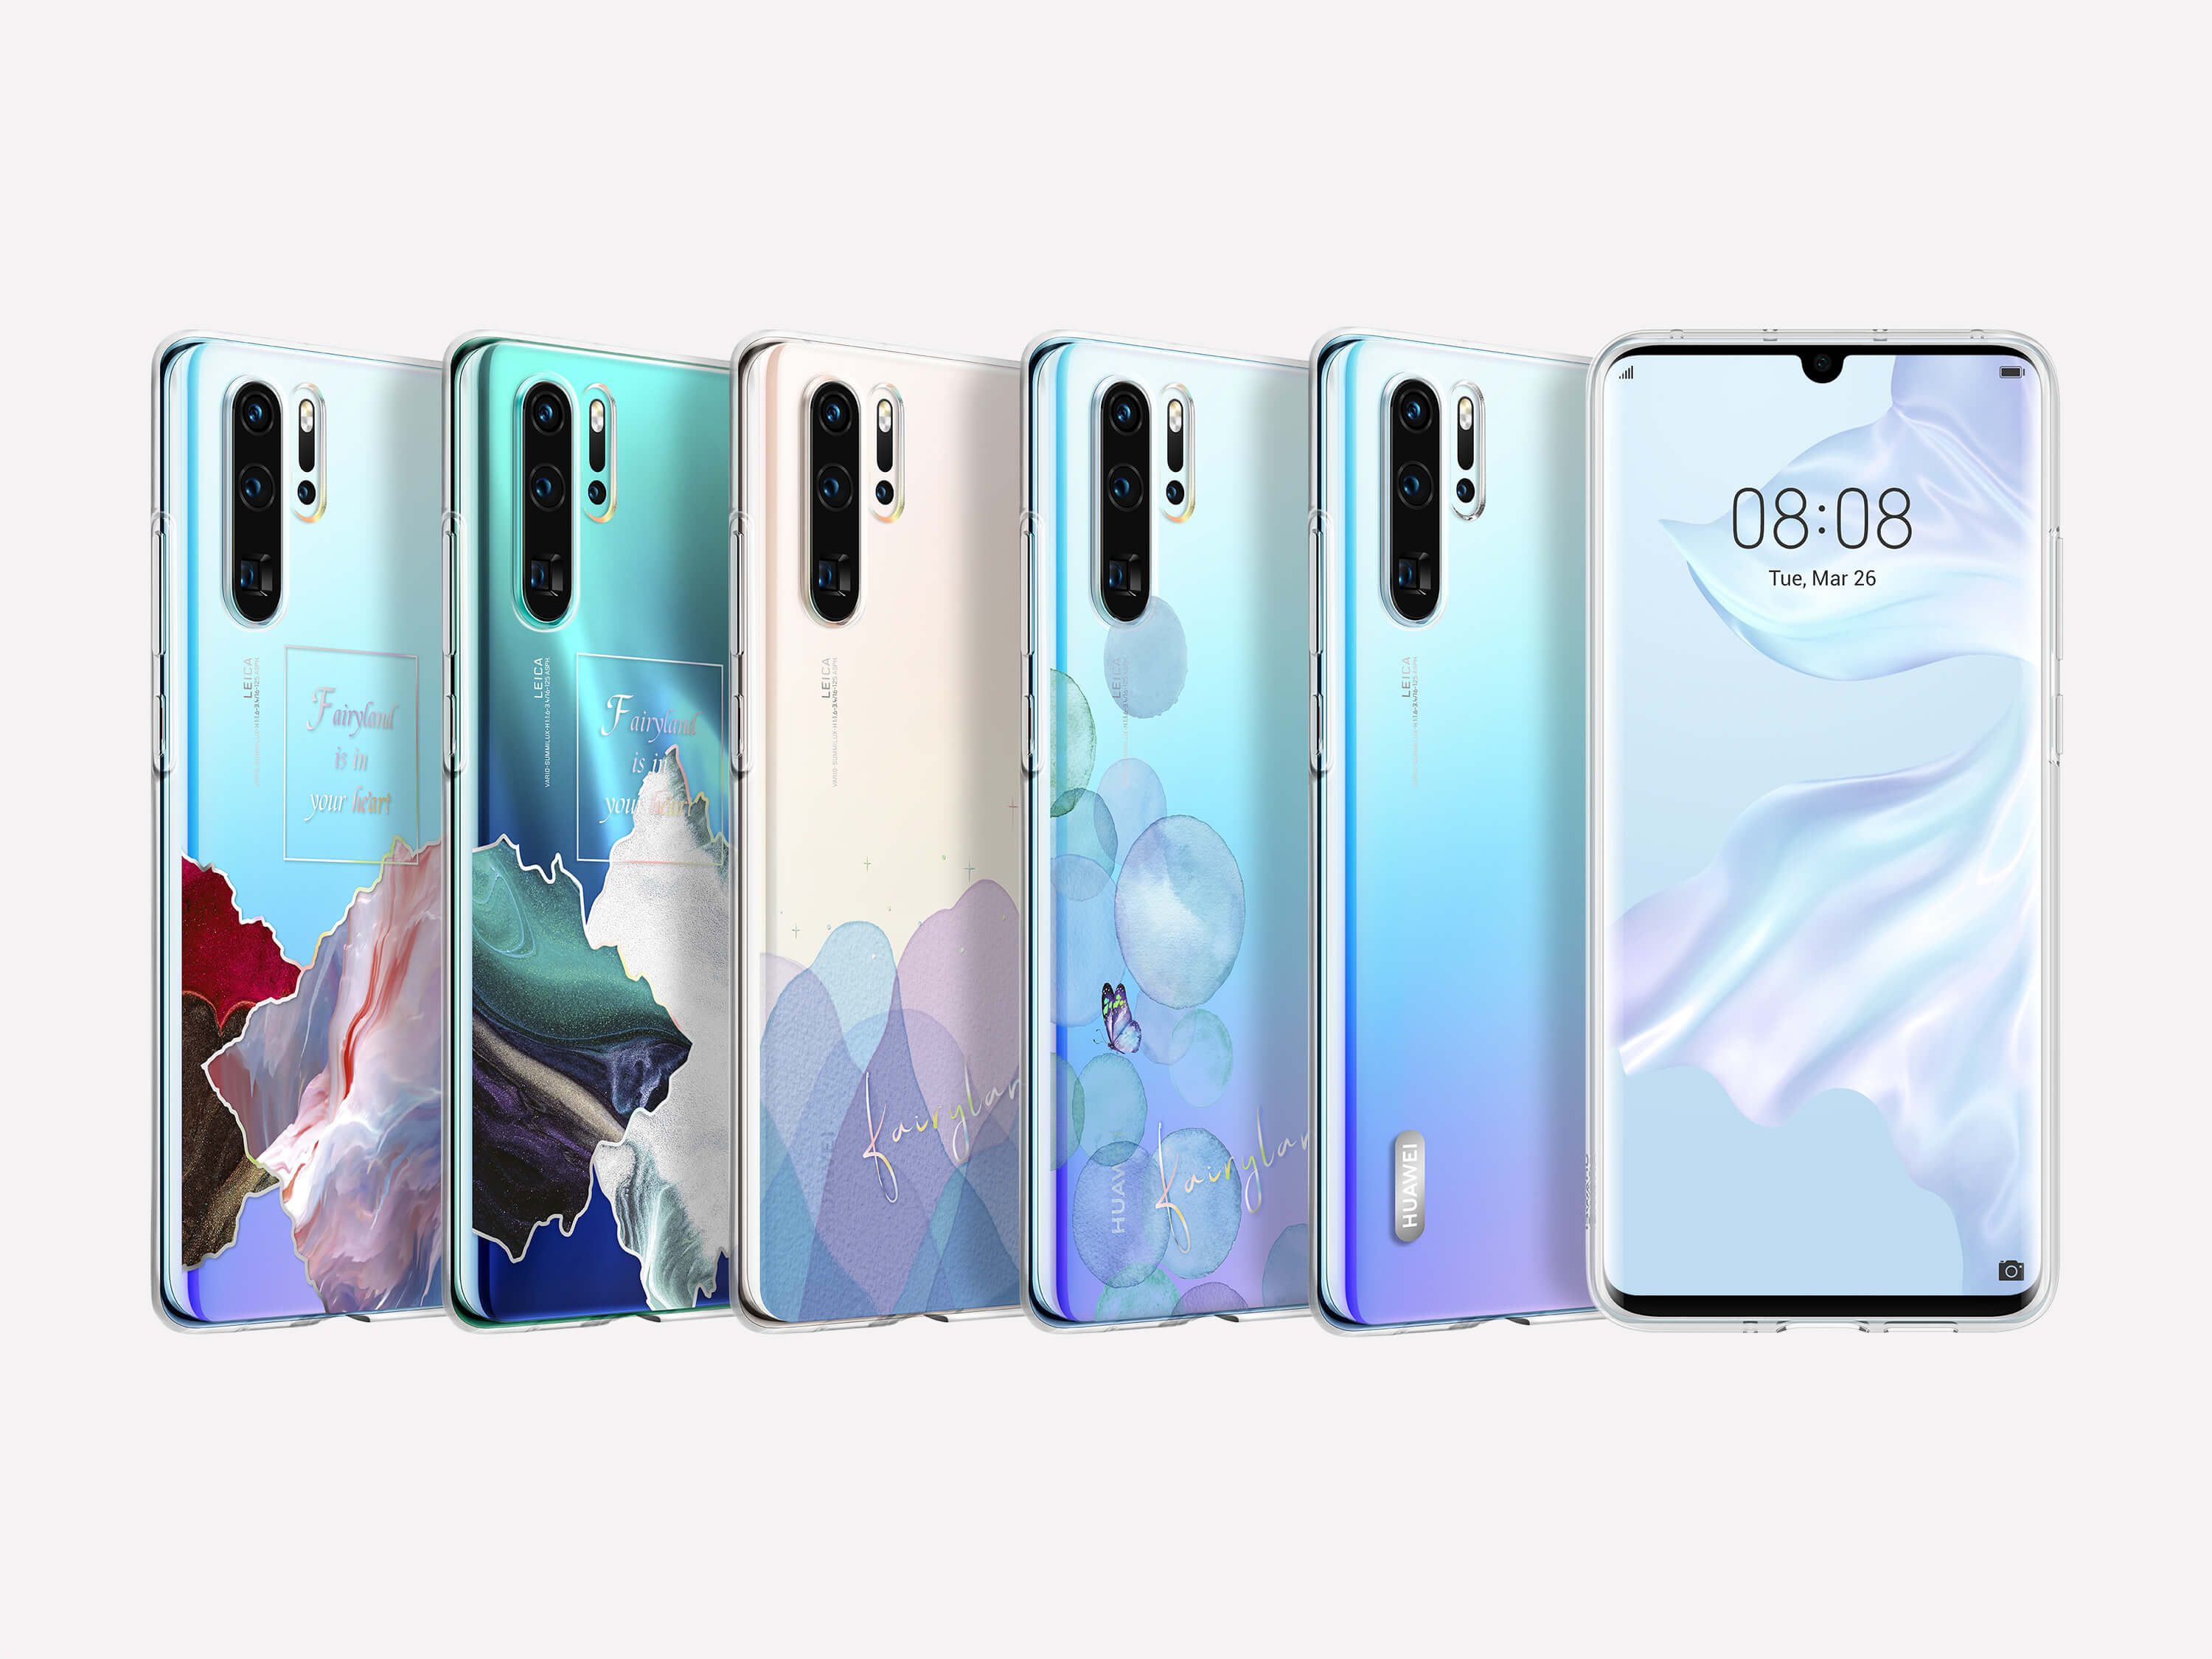 HUAWEI P30 PRO REVIEW: ZOOMING INTO THE FUTURE